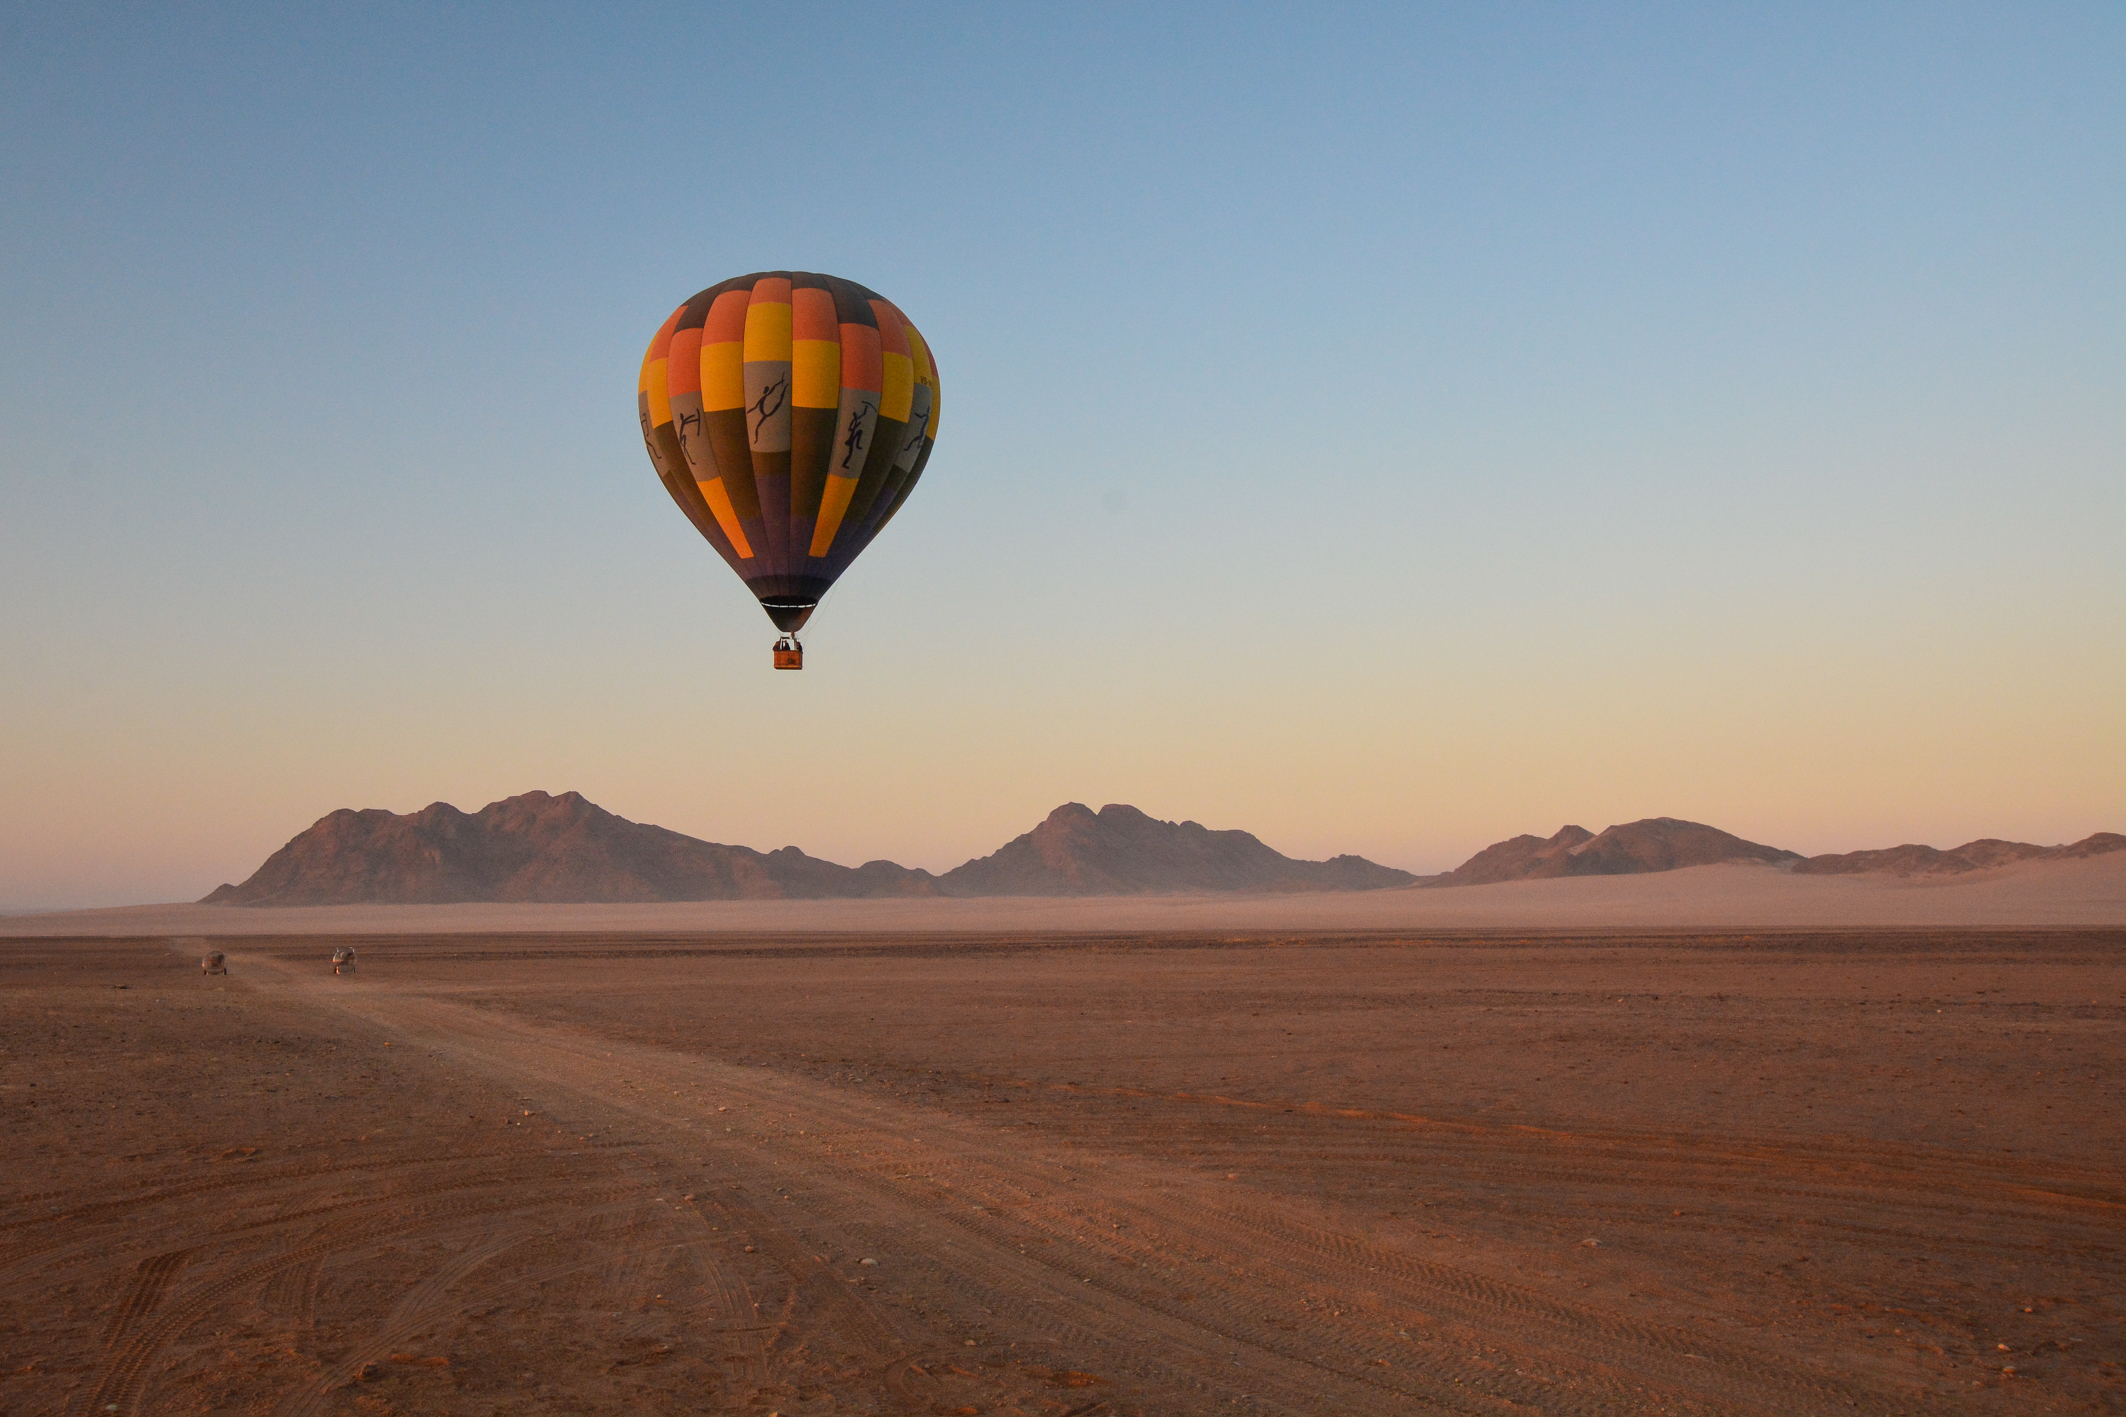 Flying across the Namib Desert in a hot air balloon